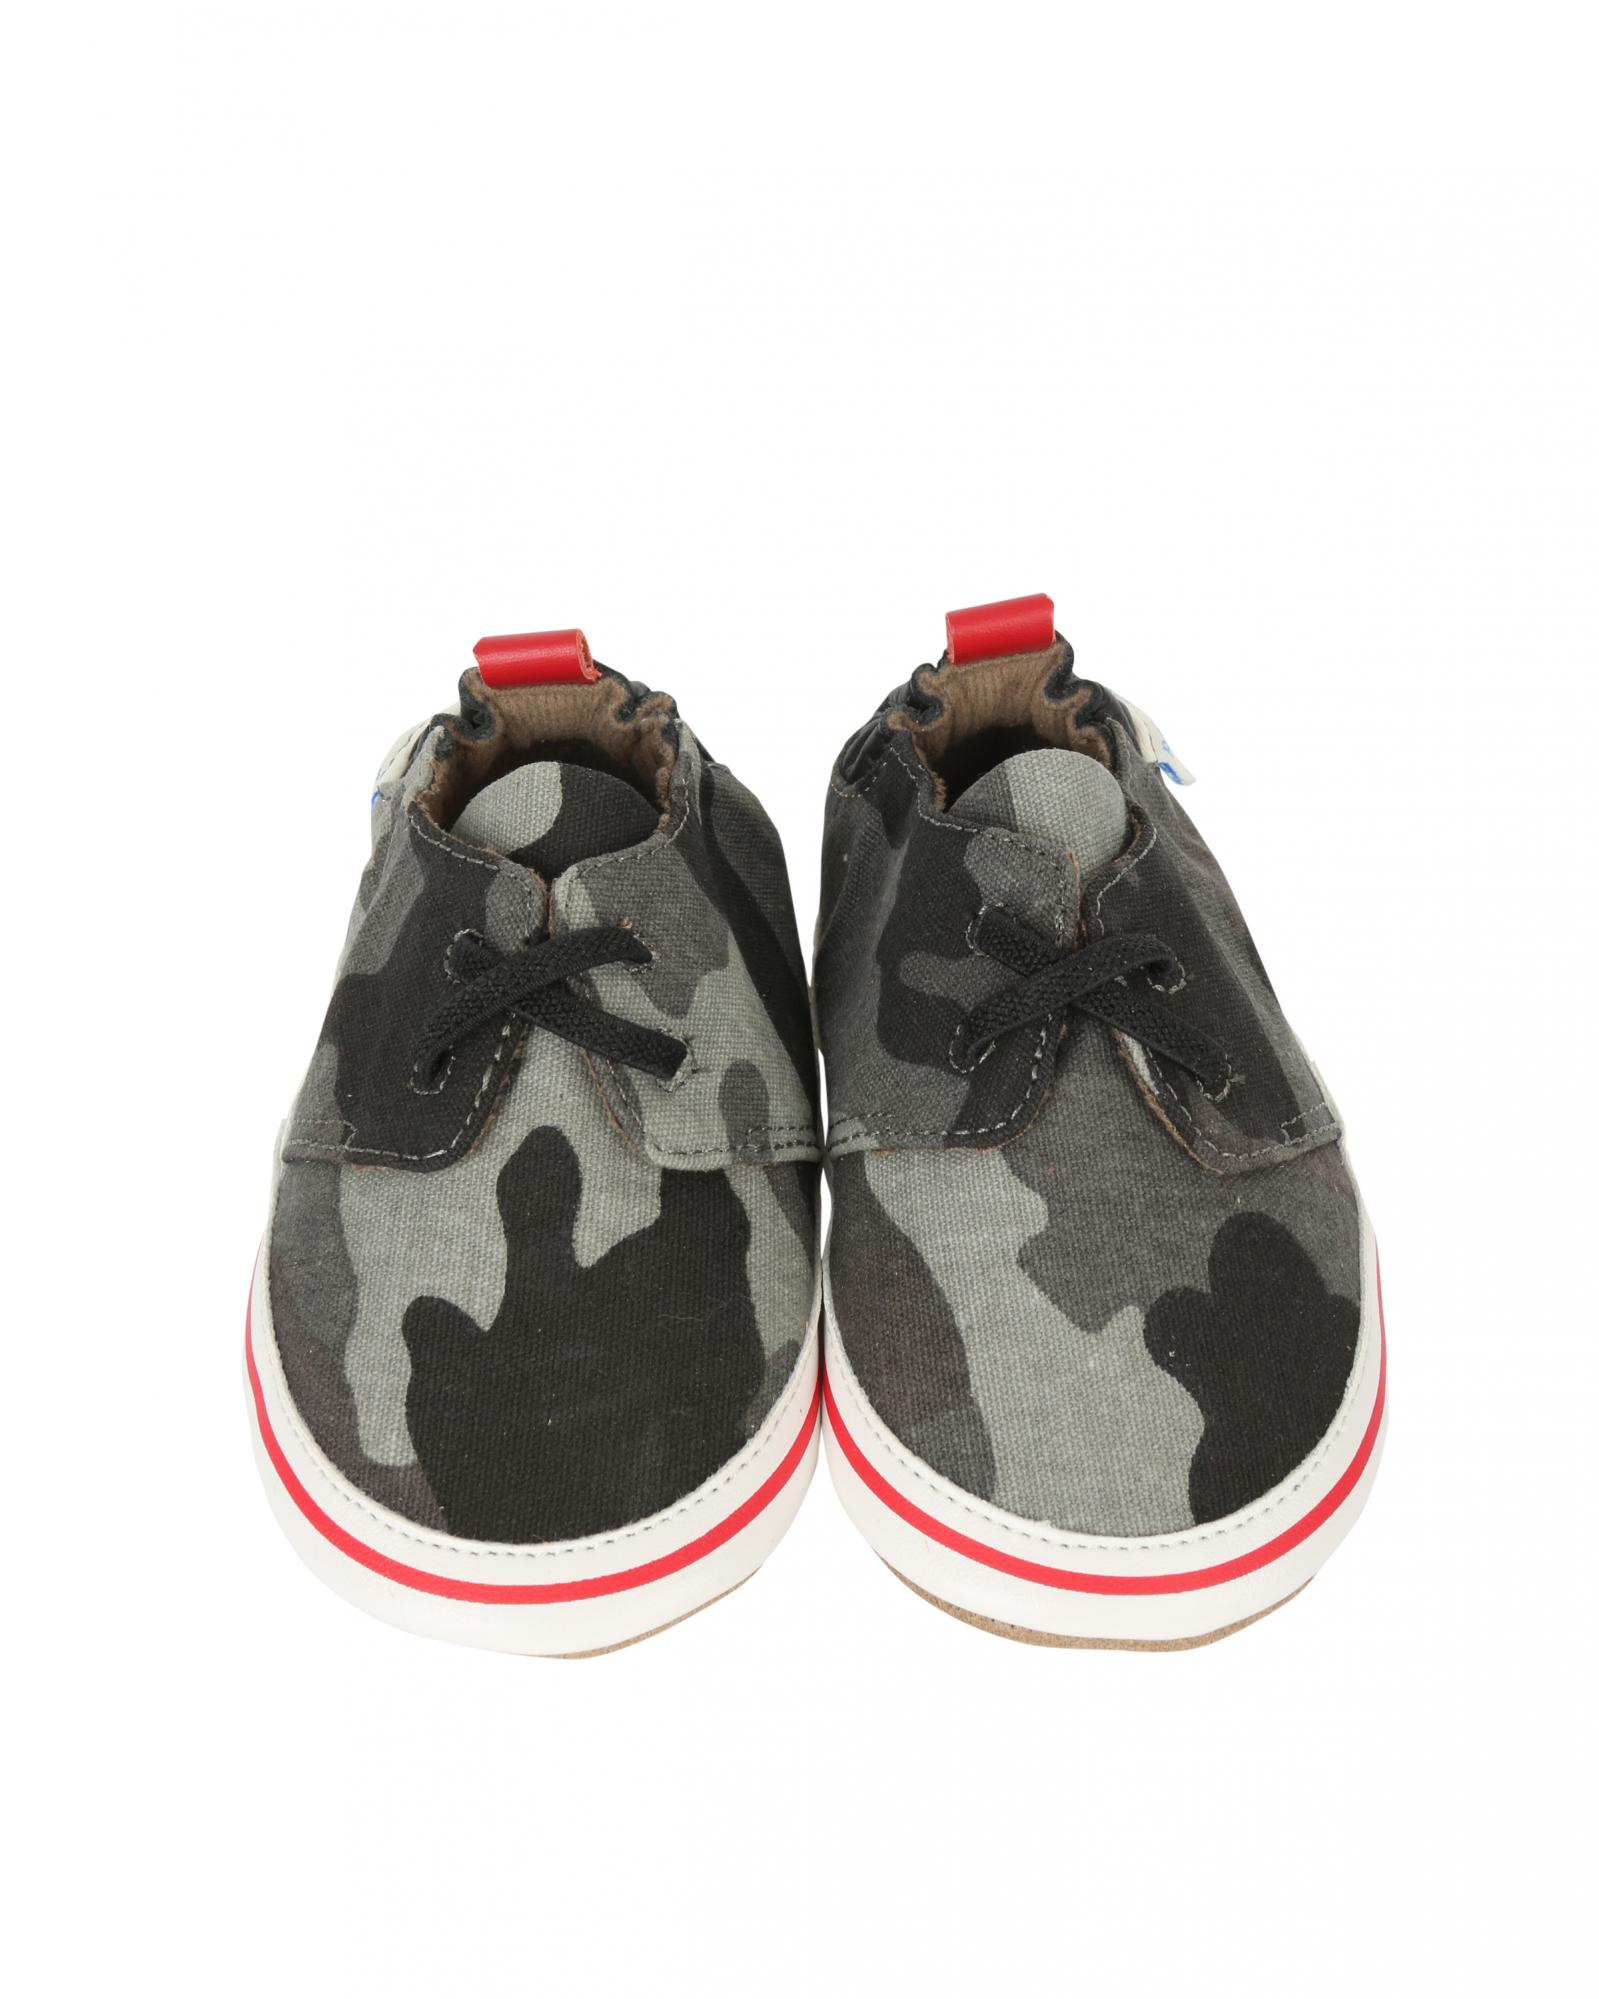 robeez-soft-sole-baby-shoes-camo.jpg